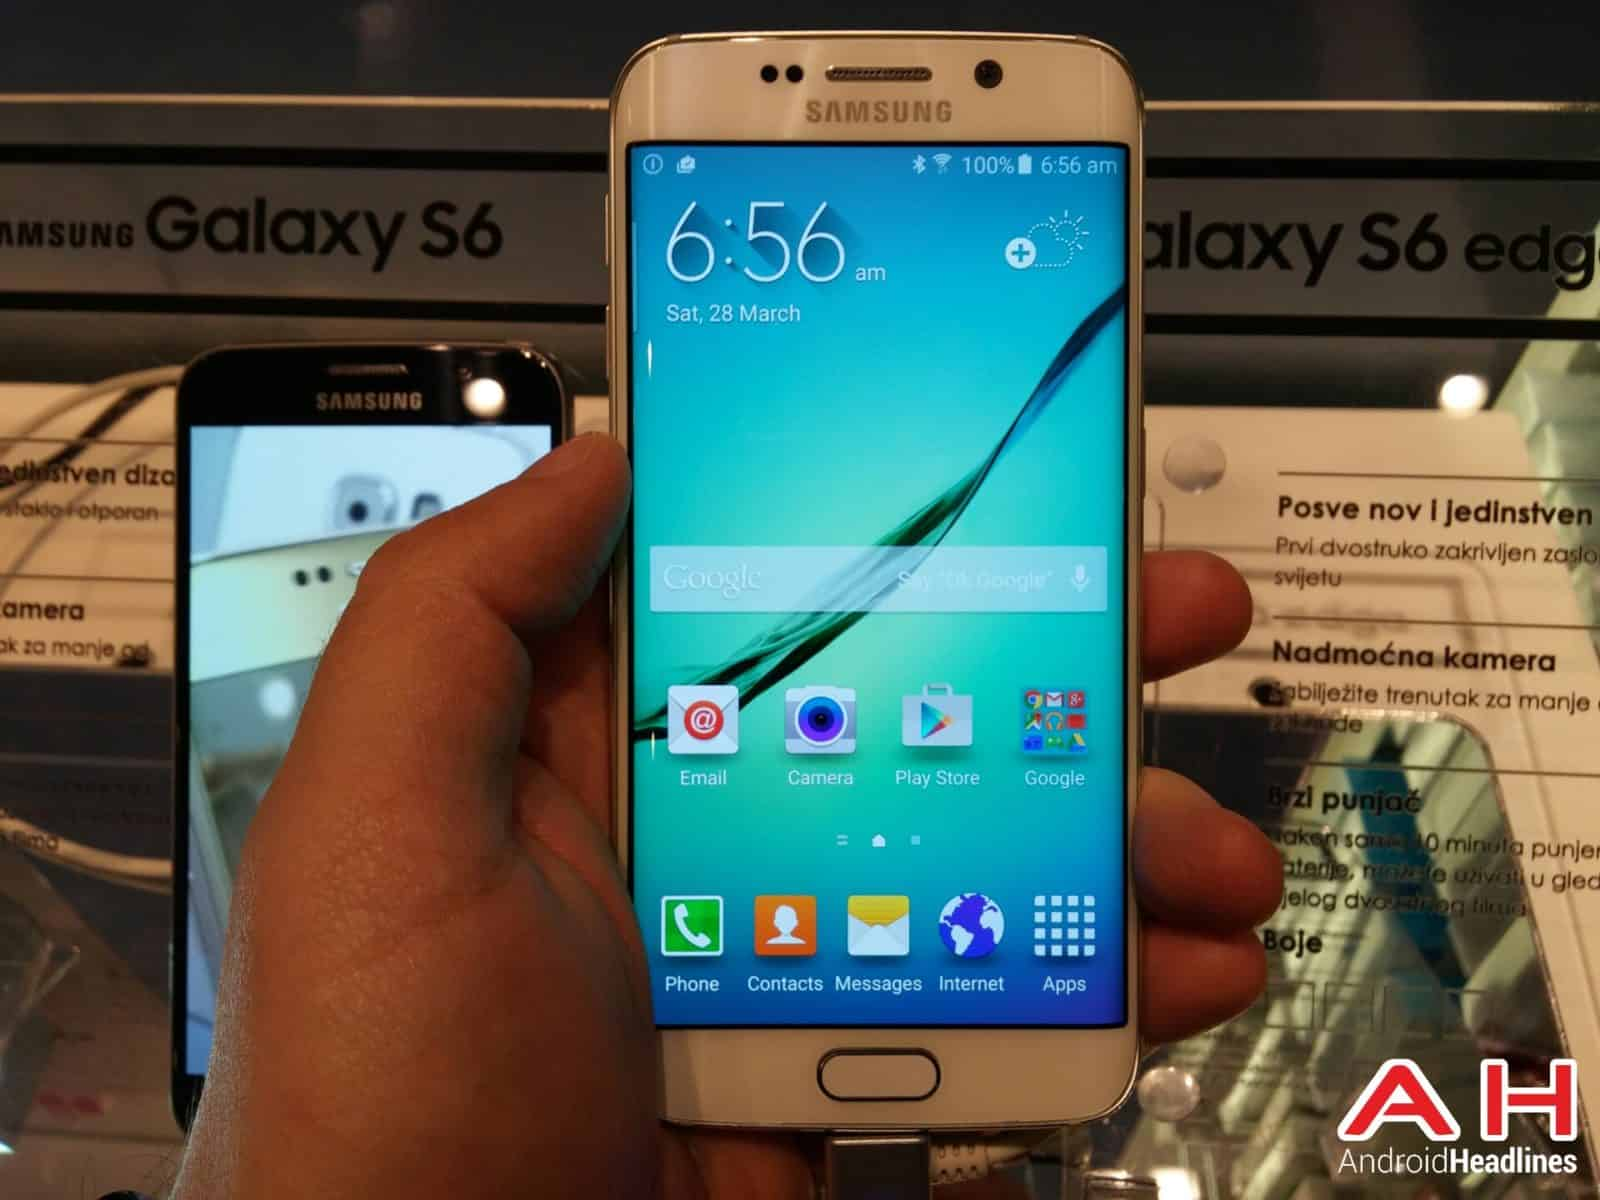 Samsung to Showcase the Galaxy S6 and Galaxy S6 Edge at Harrods